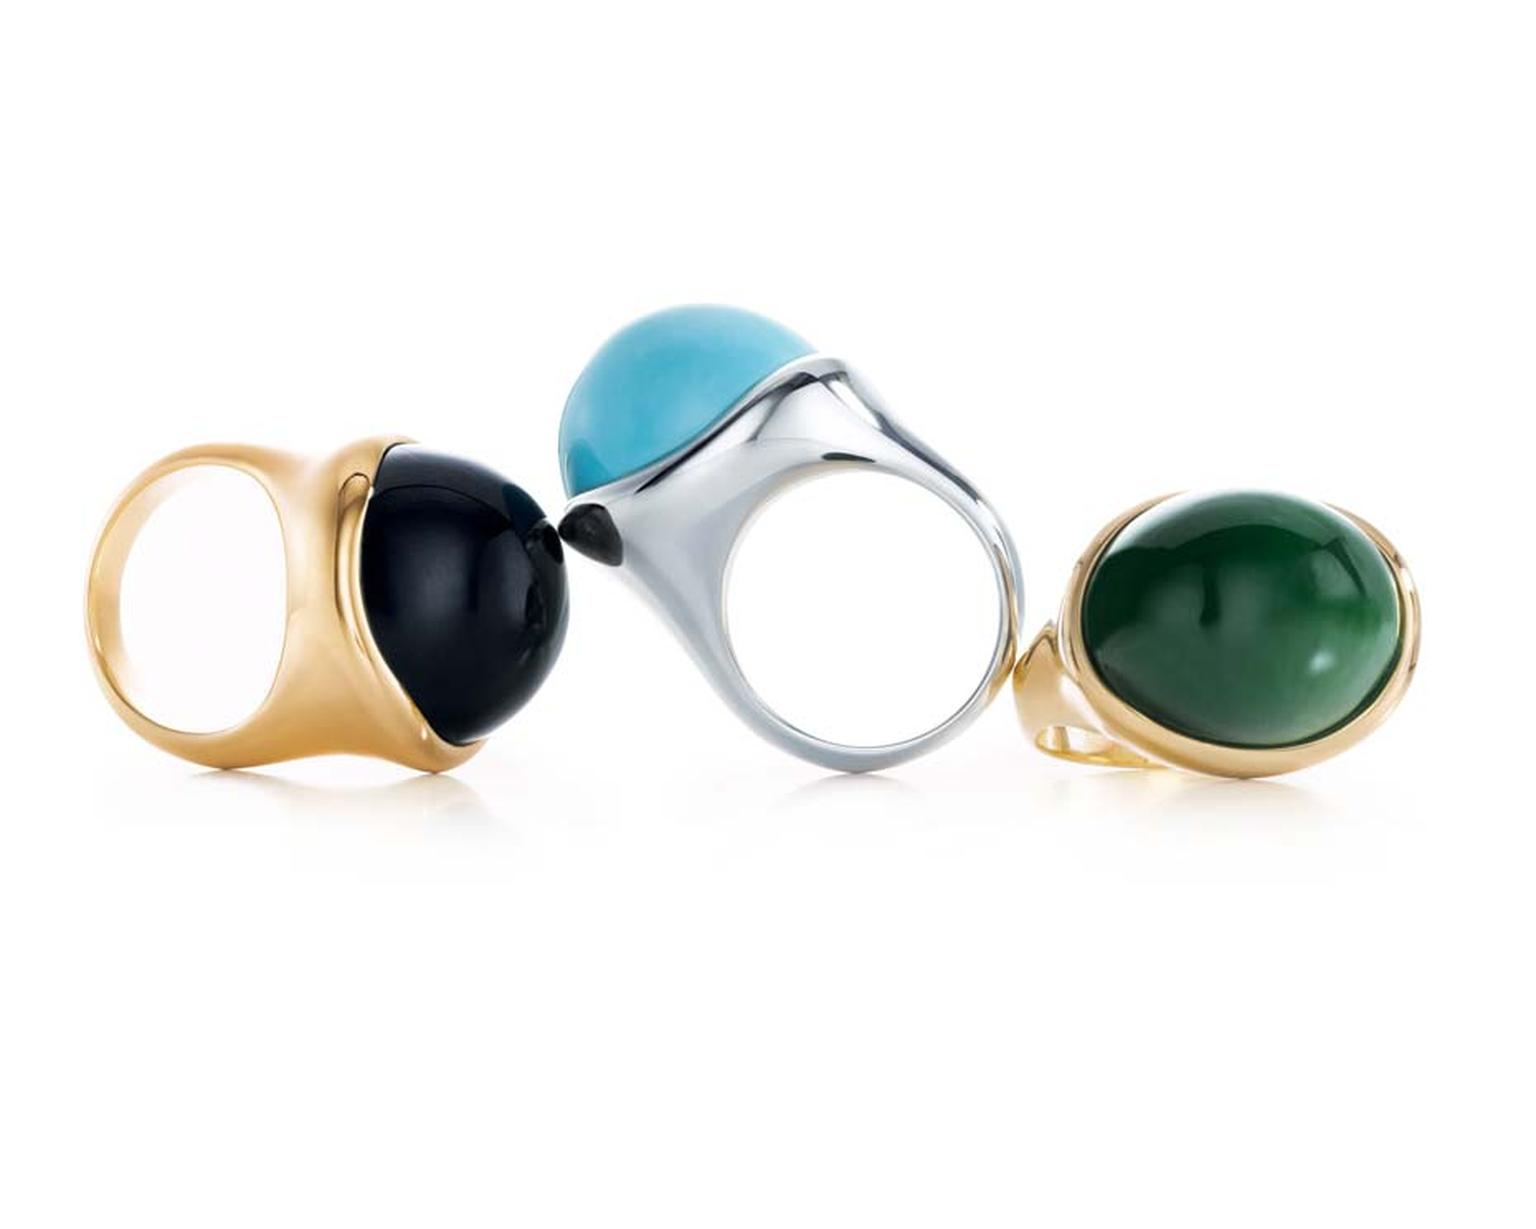 white nikolai category rings diamond jade princess vs by harmony polished product color black gold cut jadeite each true ring archives burmese band g